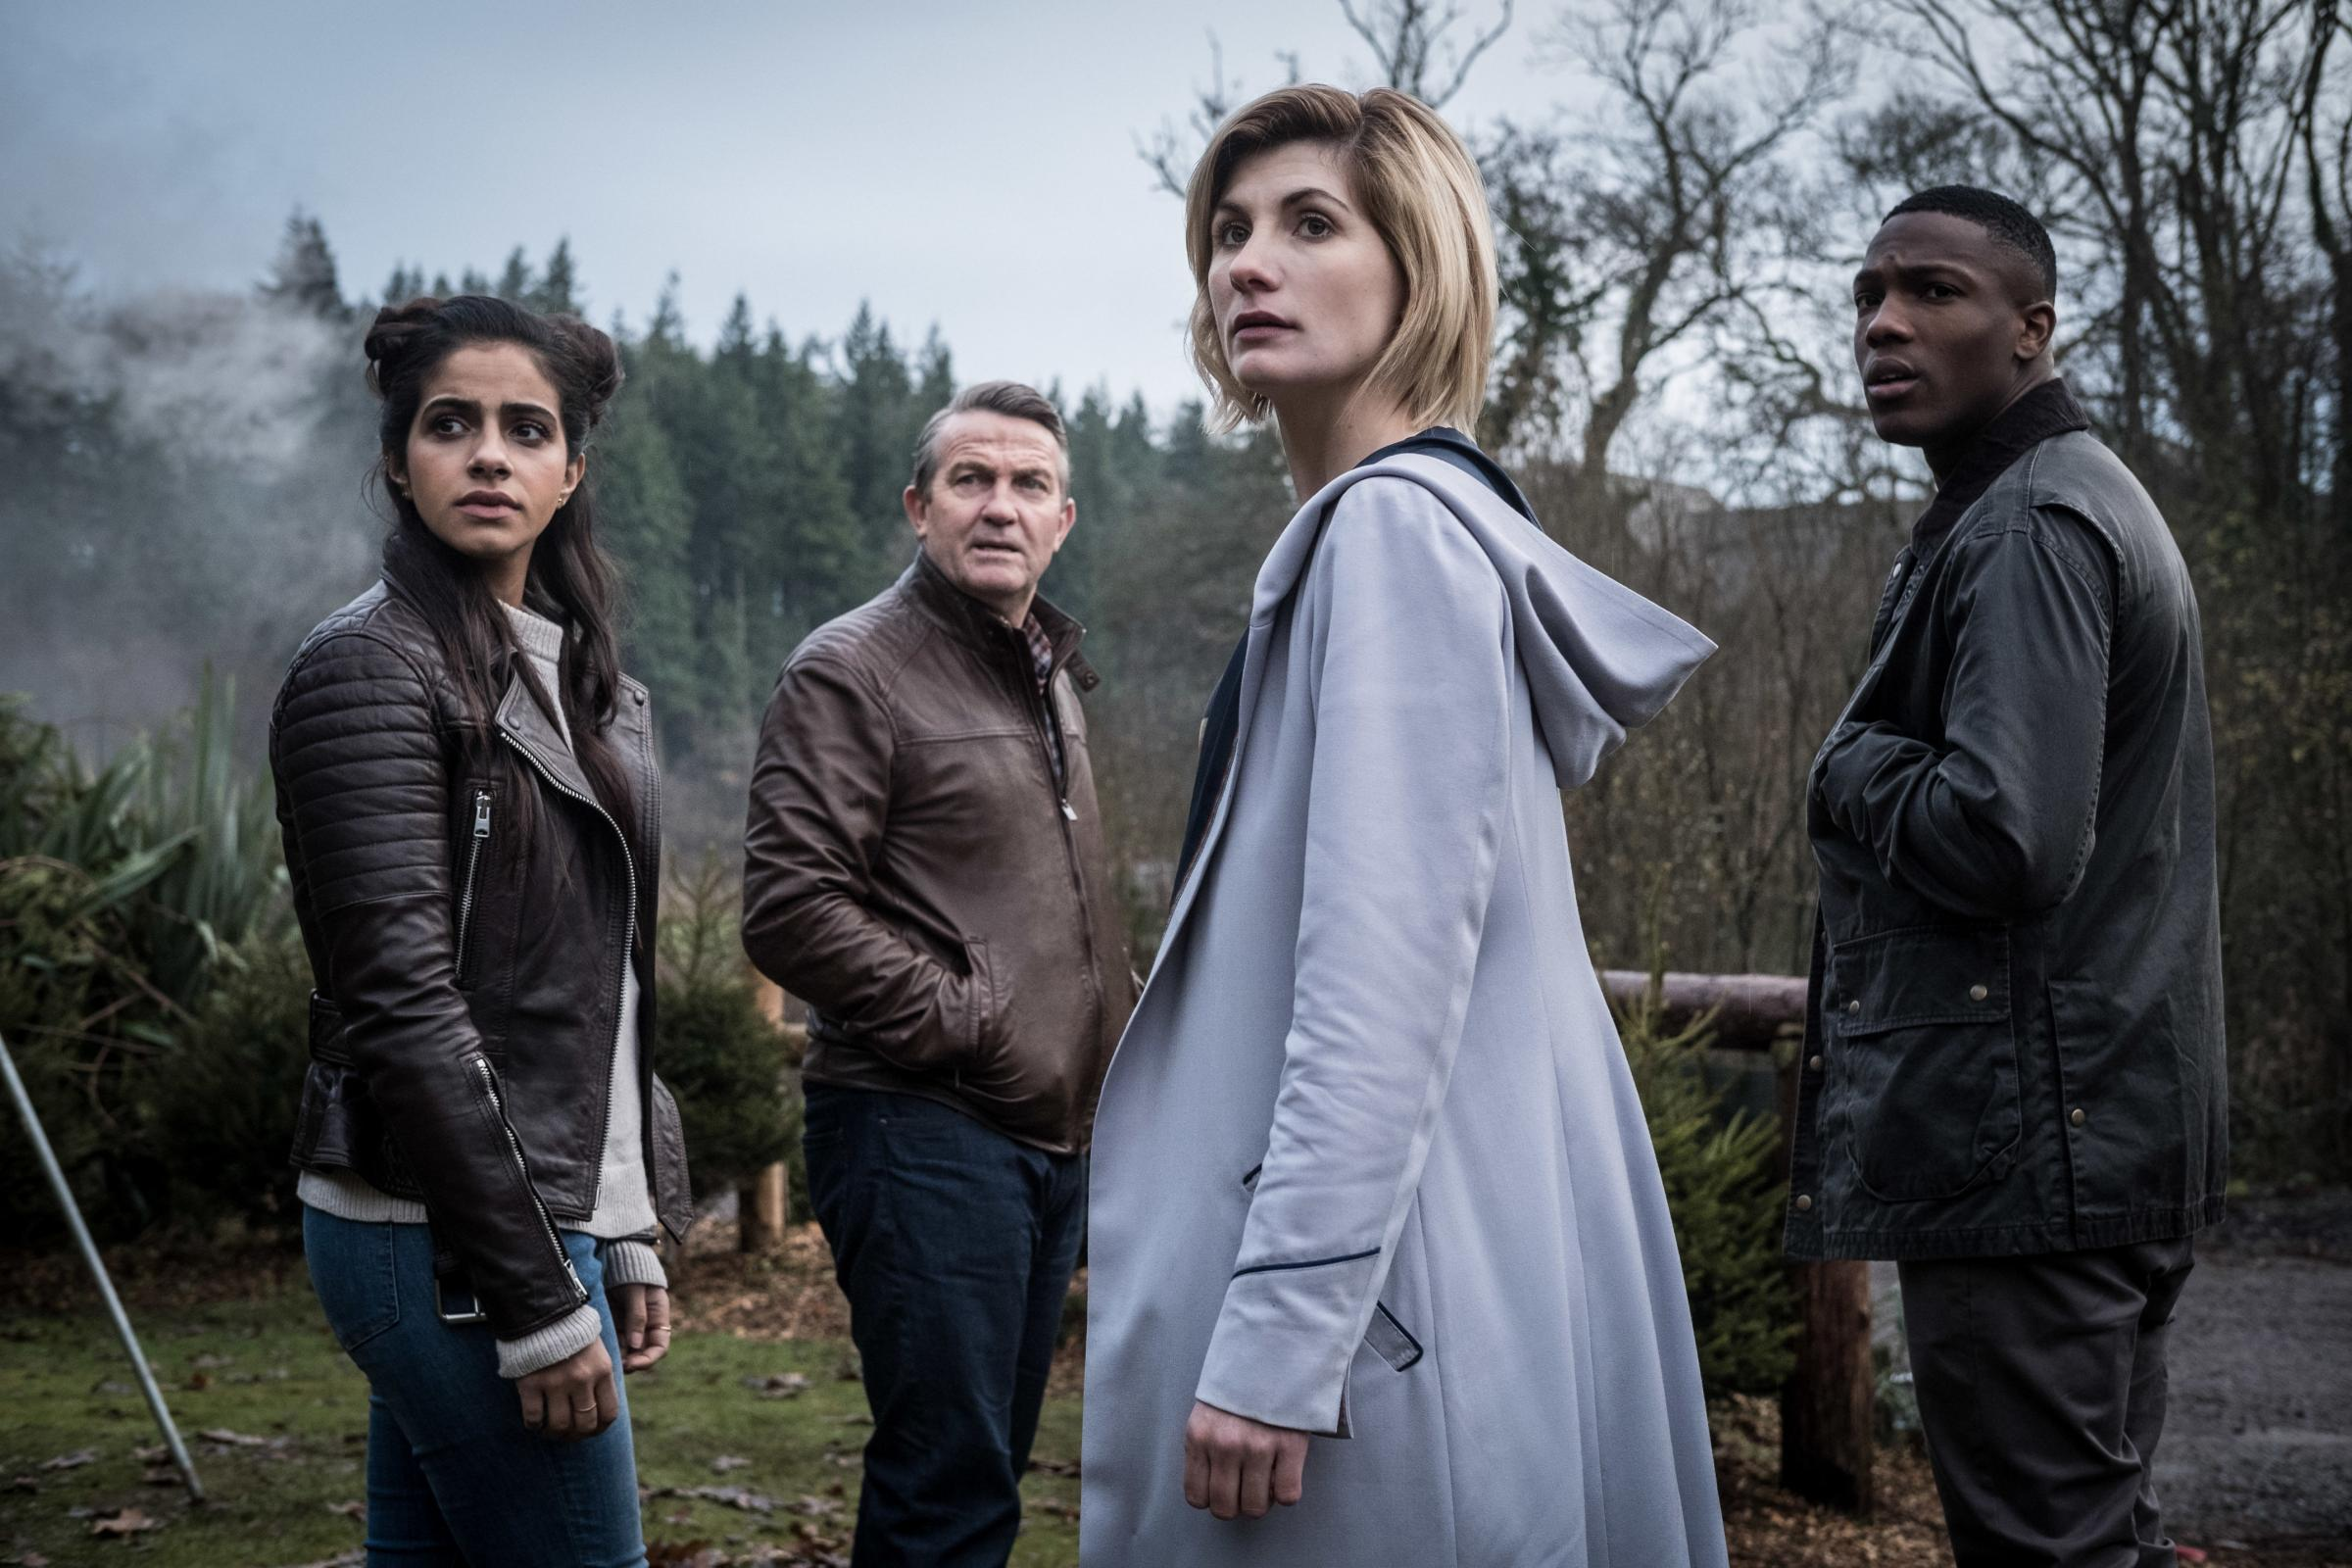 DOCTOR WHO: Mandip Gill as Yaz, Bradley Walsh as Graham, Jodie Whittaker as The Doctor, Tosin Cole as Ryan. Picture: PA Photo/BBC/BBC Studios/Giles Kyte